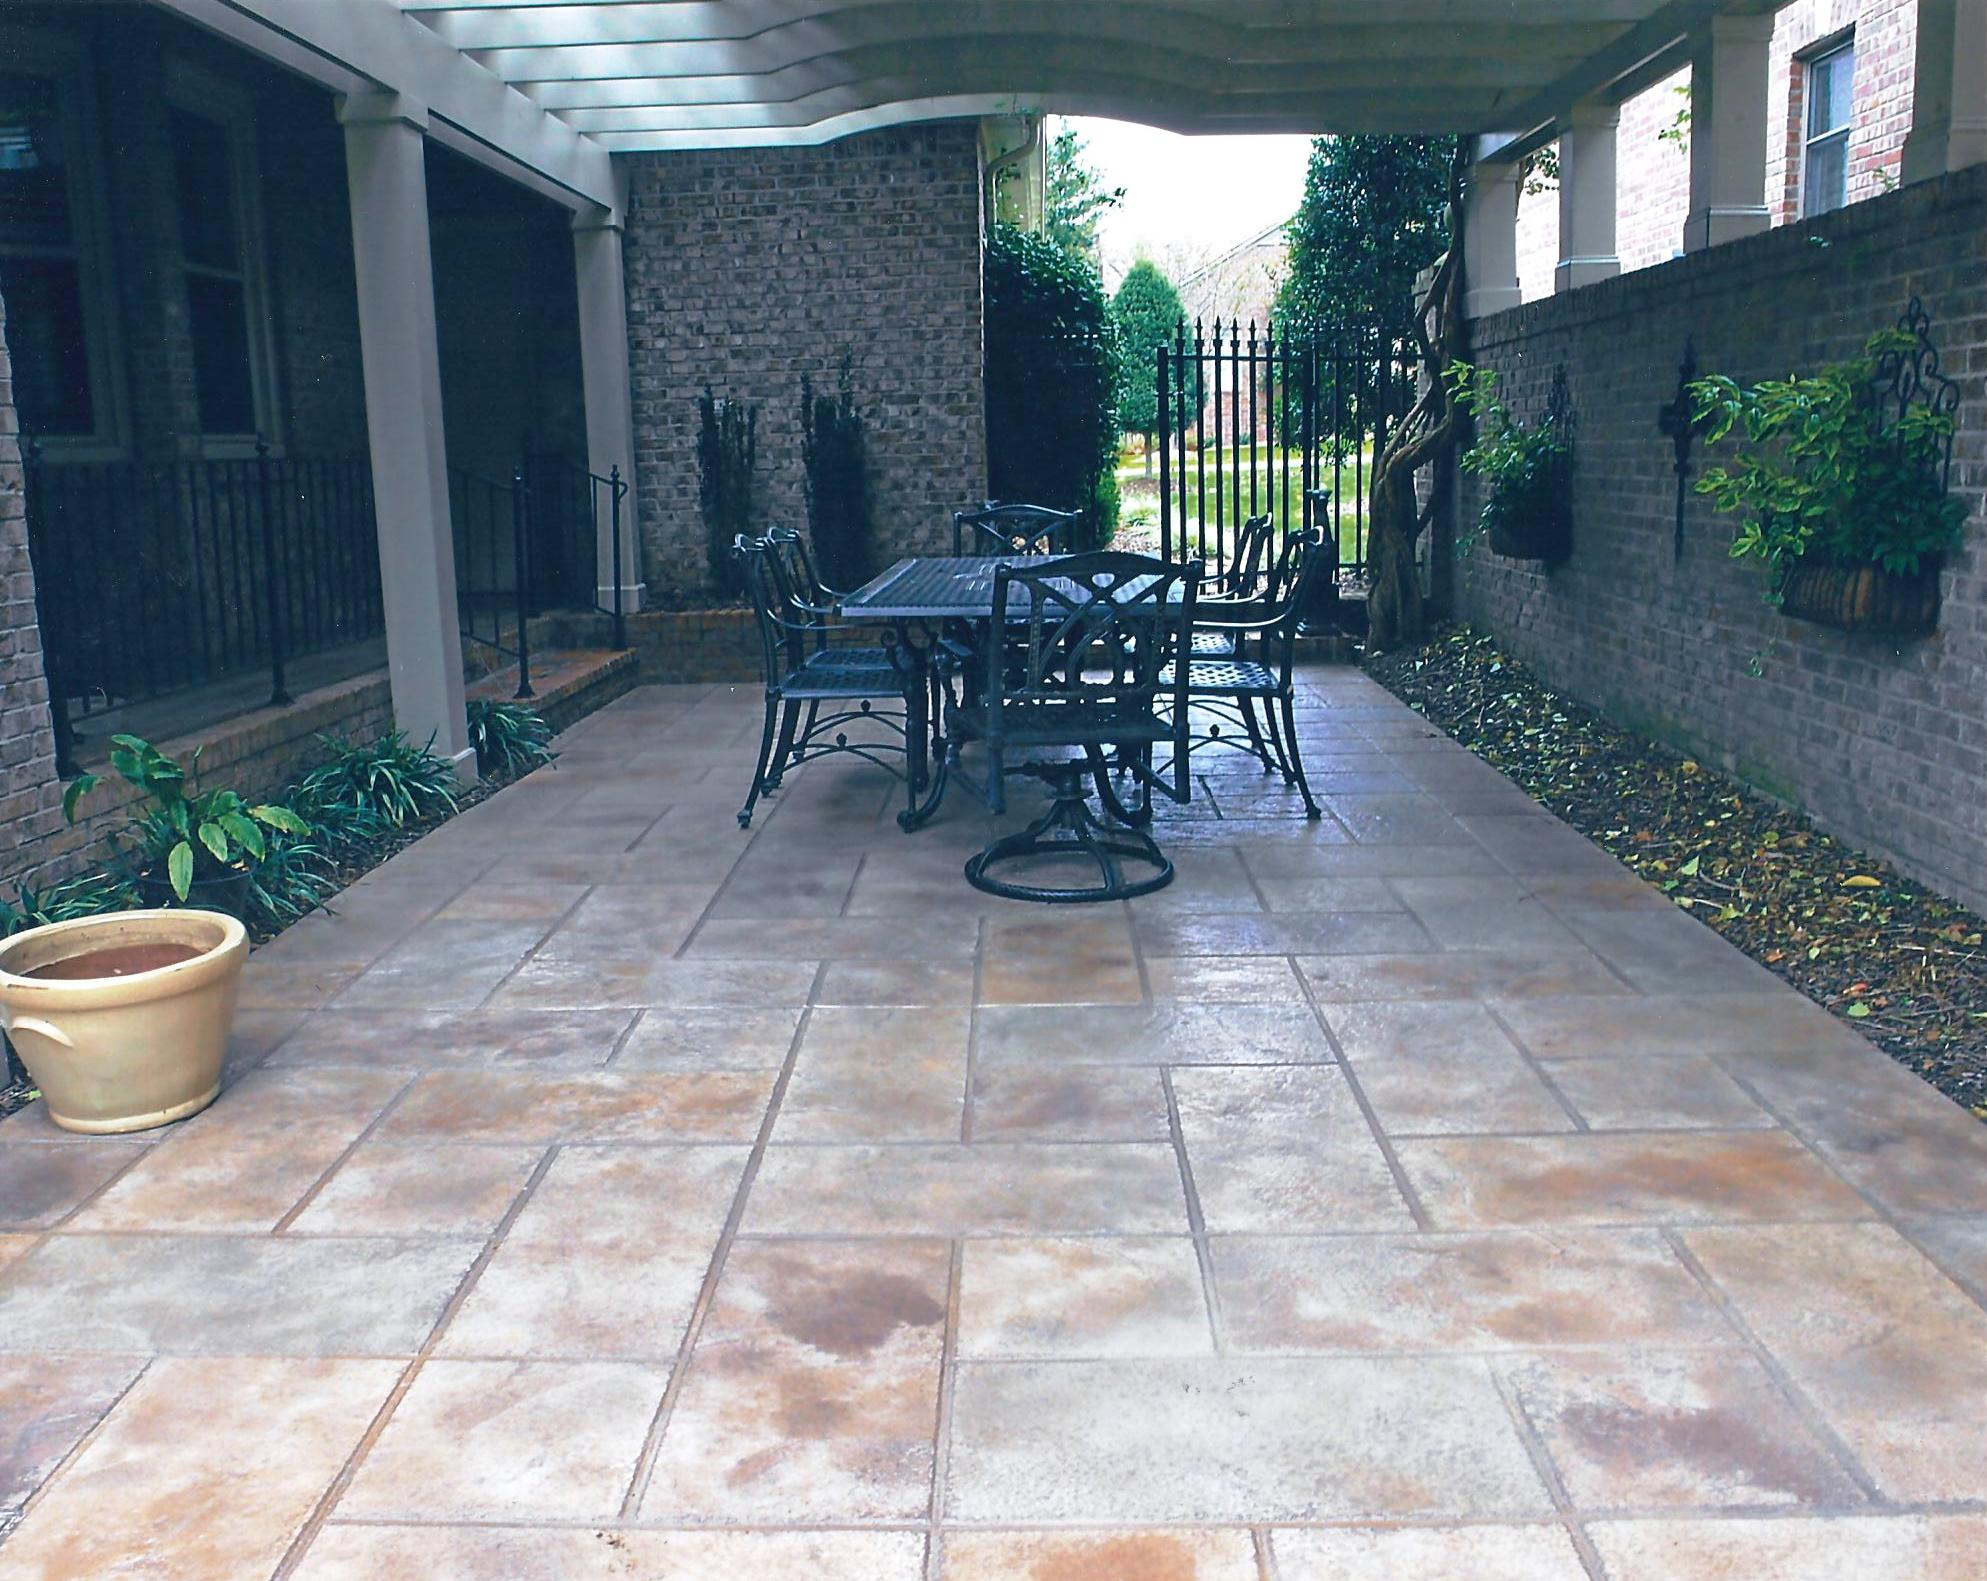 Concrete Coating Specialists, Inc. Is The Best Company To Call For Patio  Refinishing Projects In Point Loma, CA. We Provide Outstanding Concrete  Repair, ...